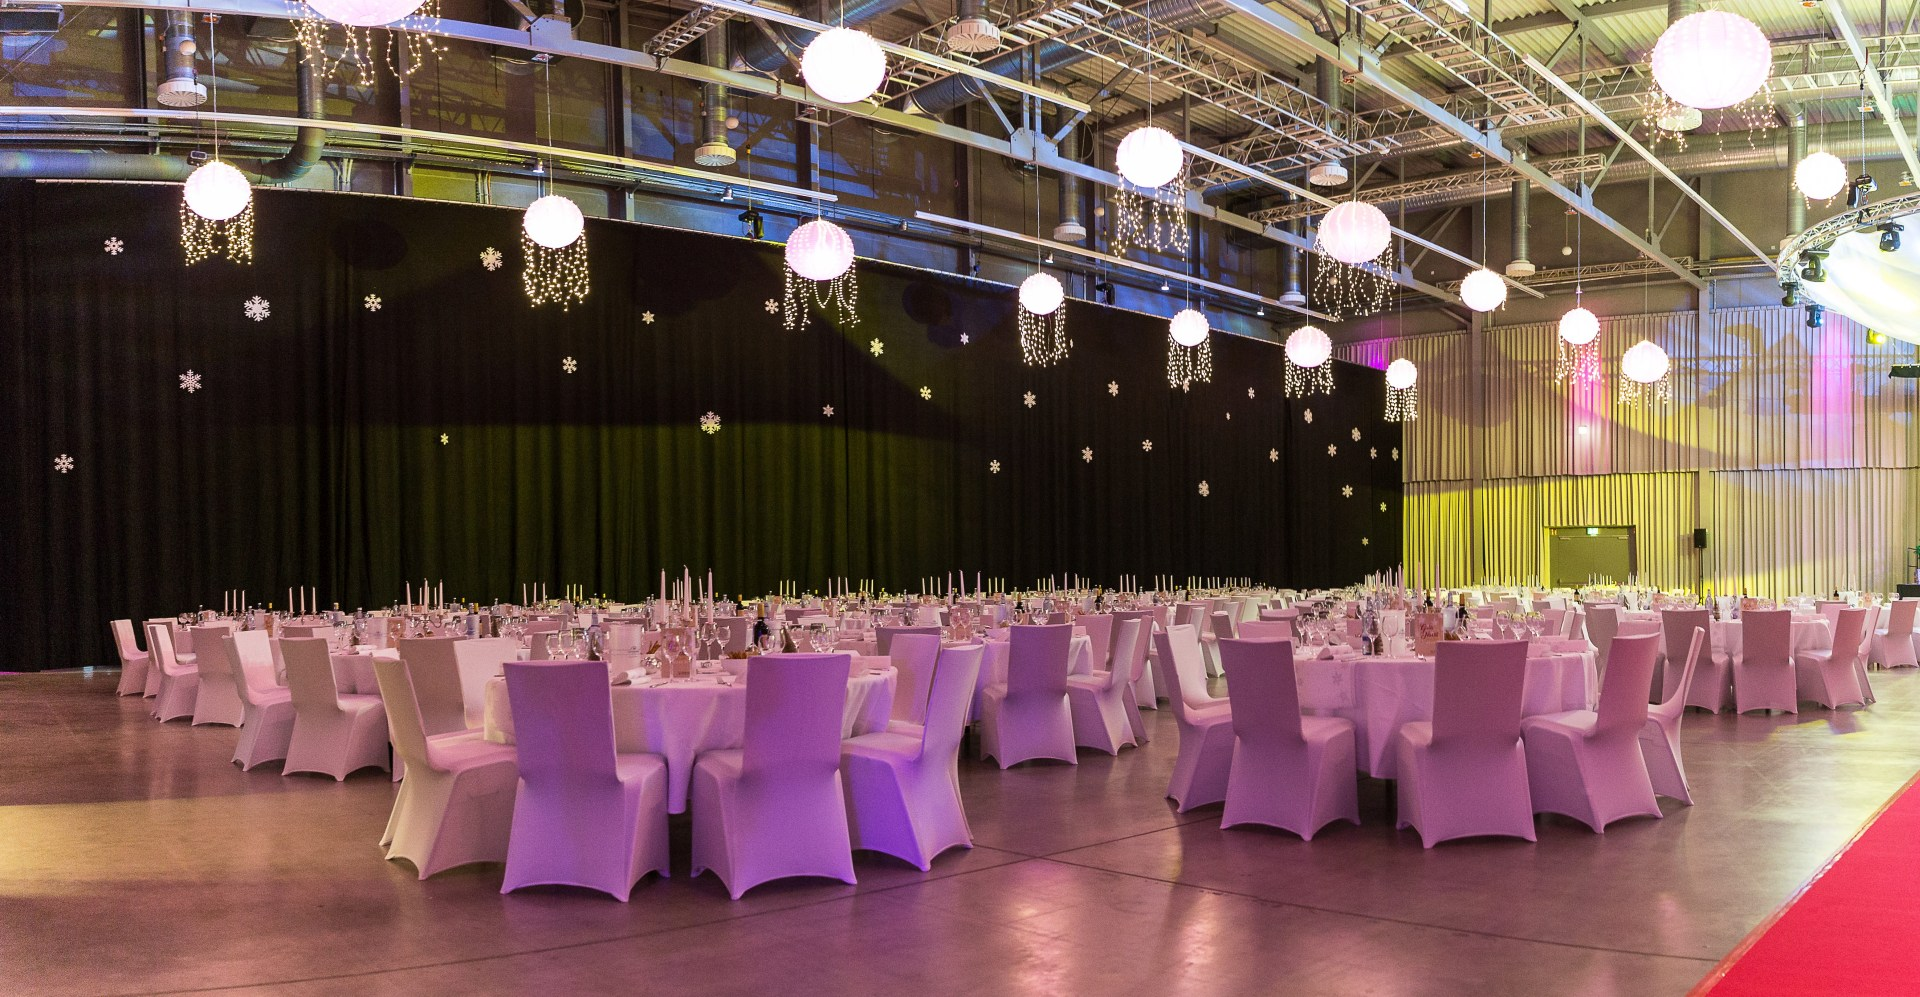 Messehallen Gala Abiball